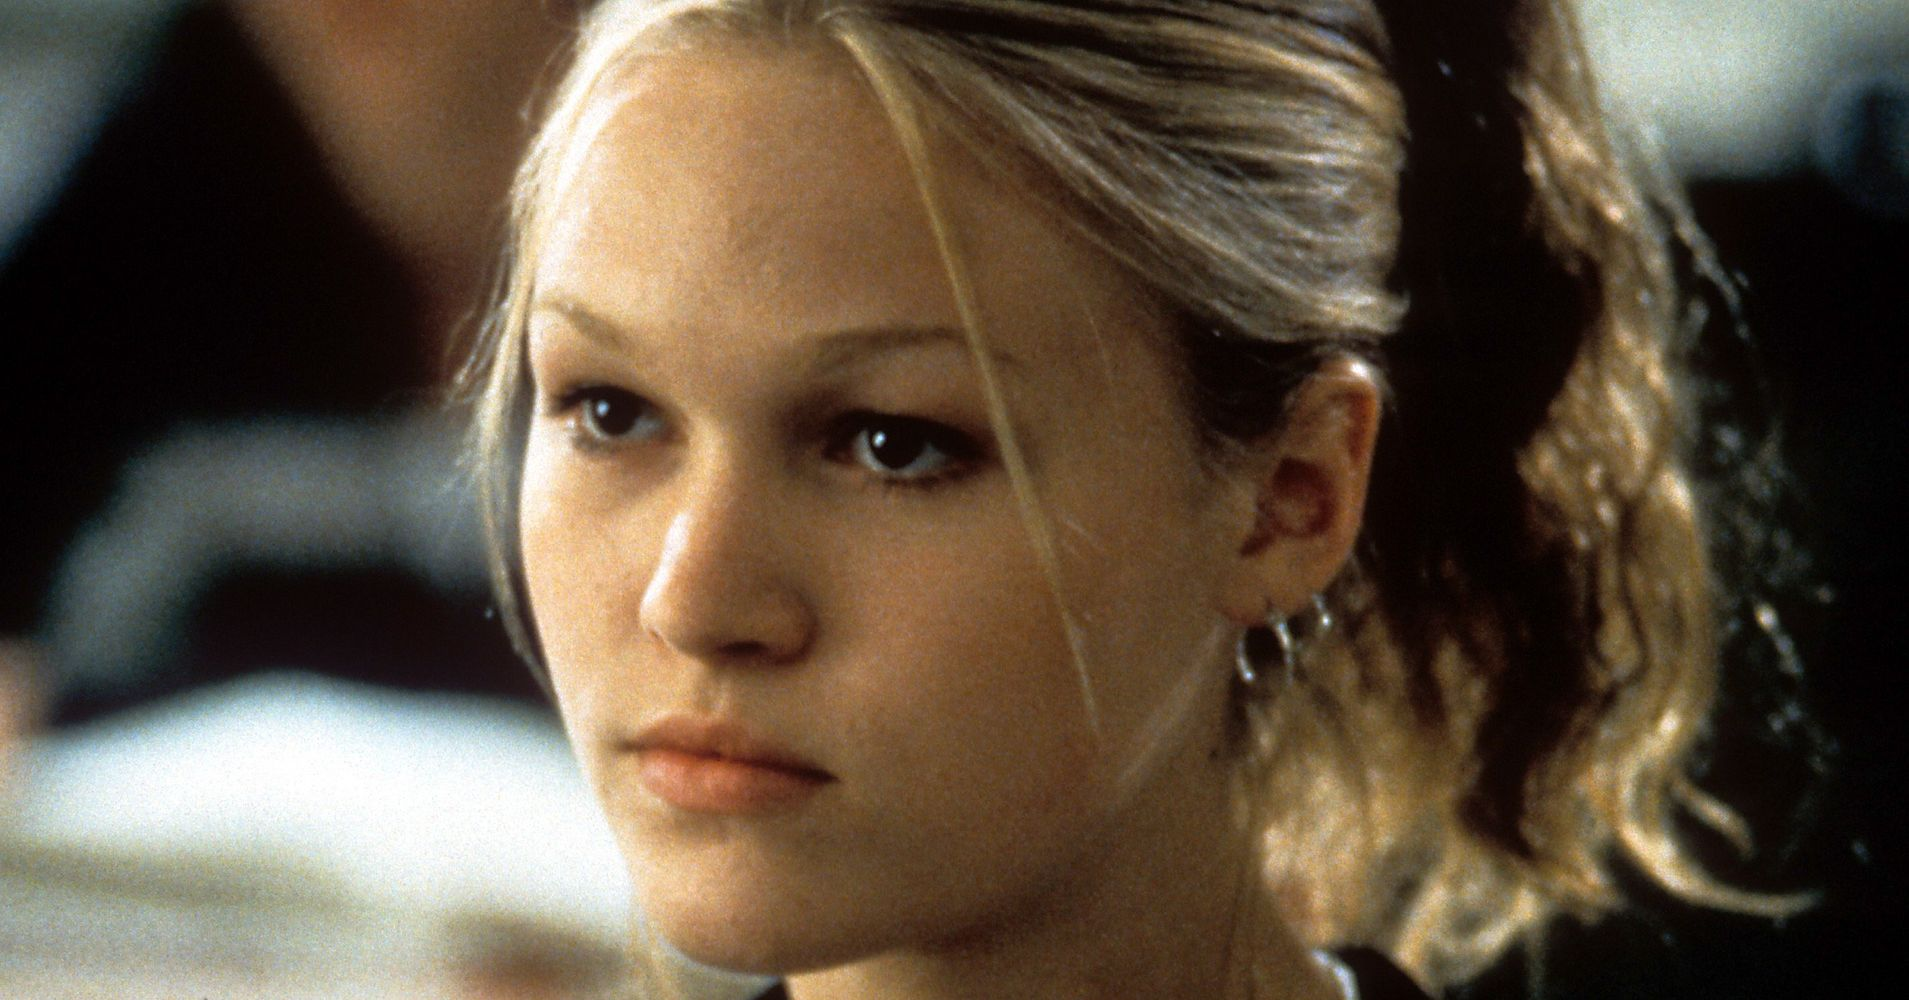 Ten Things I Hate About You Film Stills: 10 Things You Need To Know Now That Julia Stiles Is